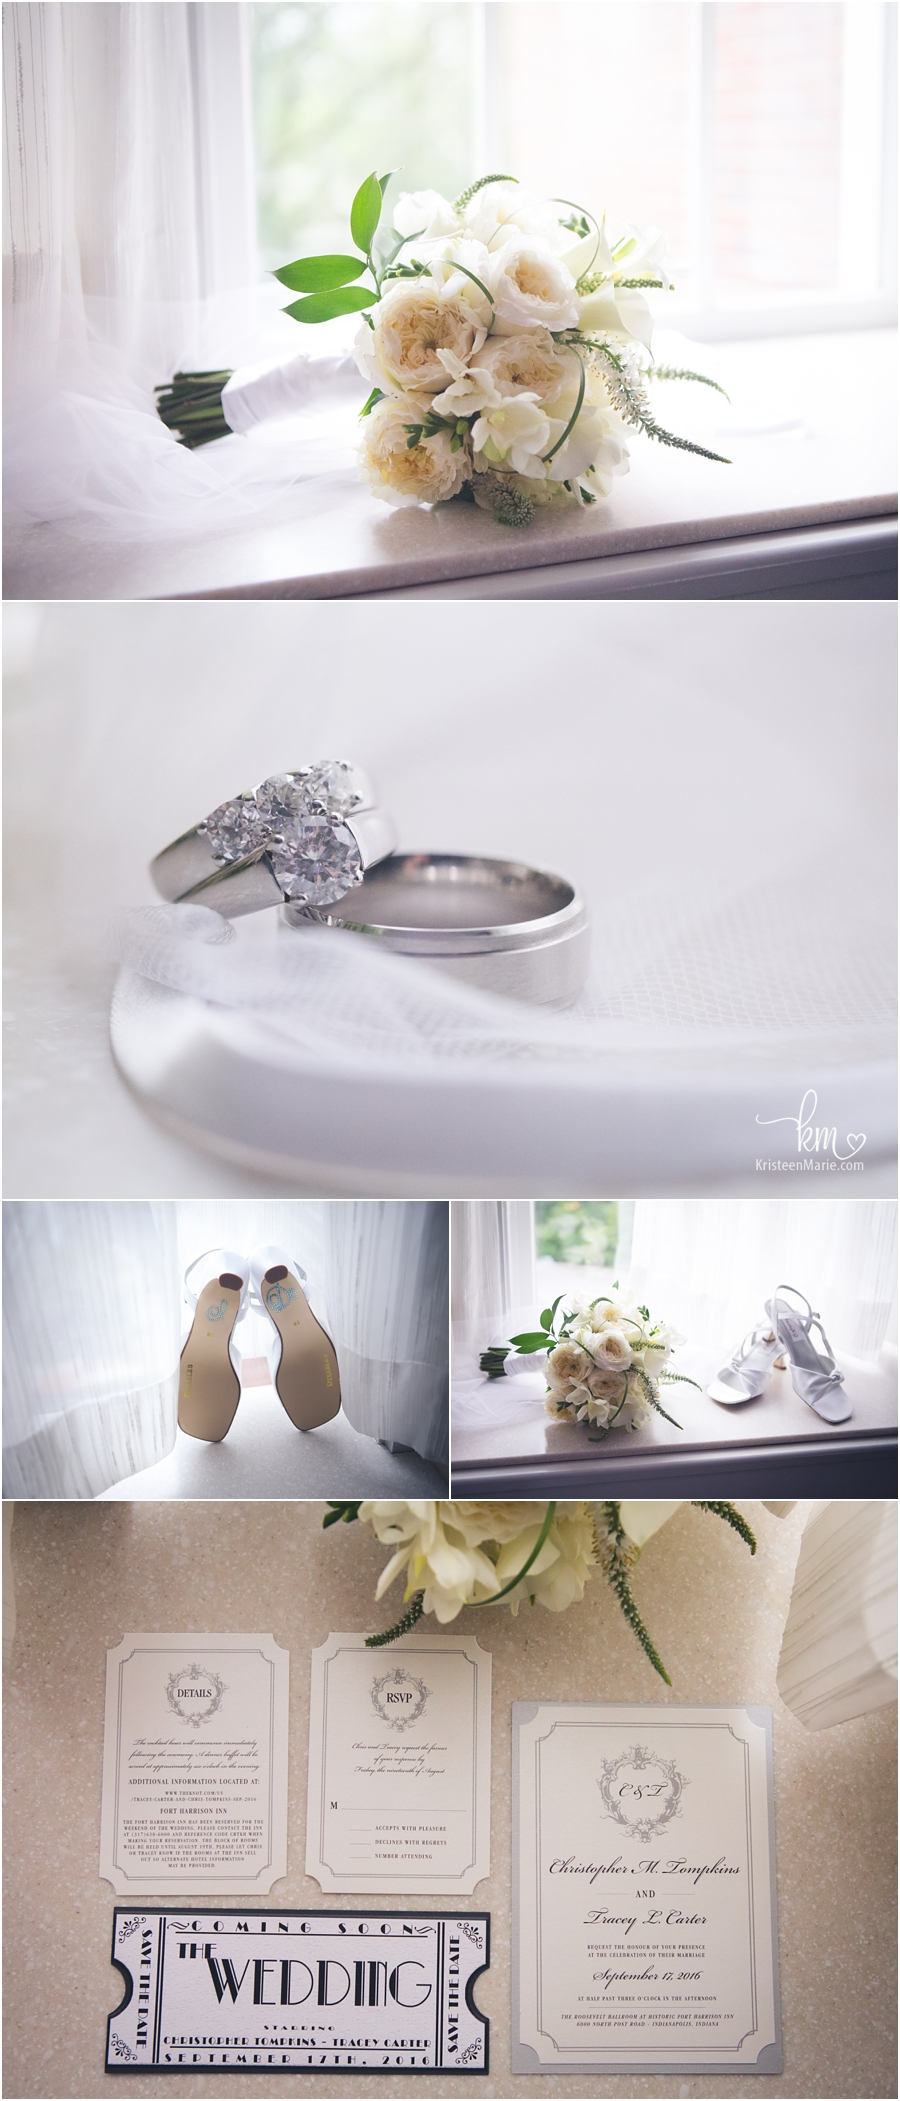 wedding detials - flowers, rings, shoes